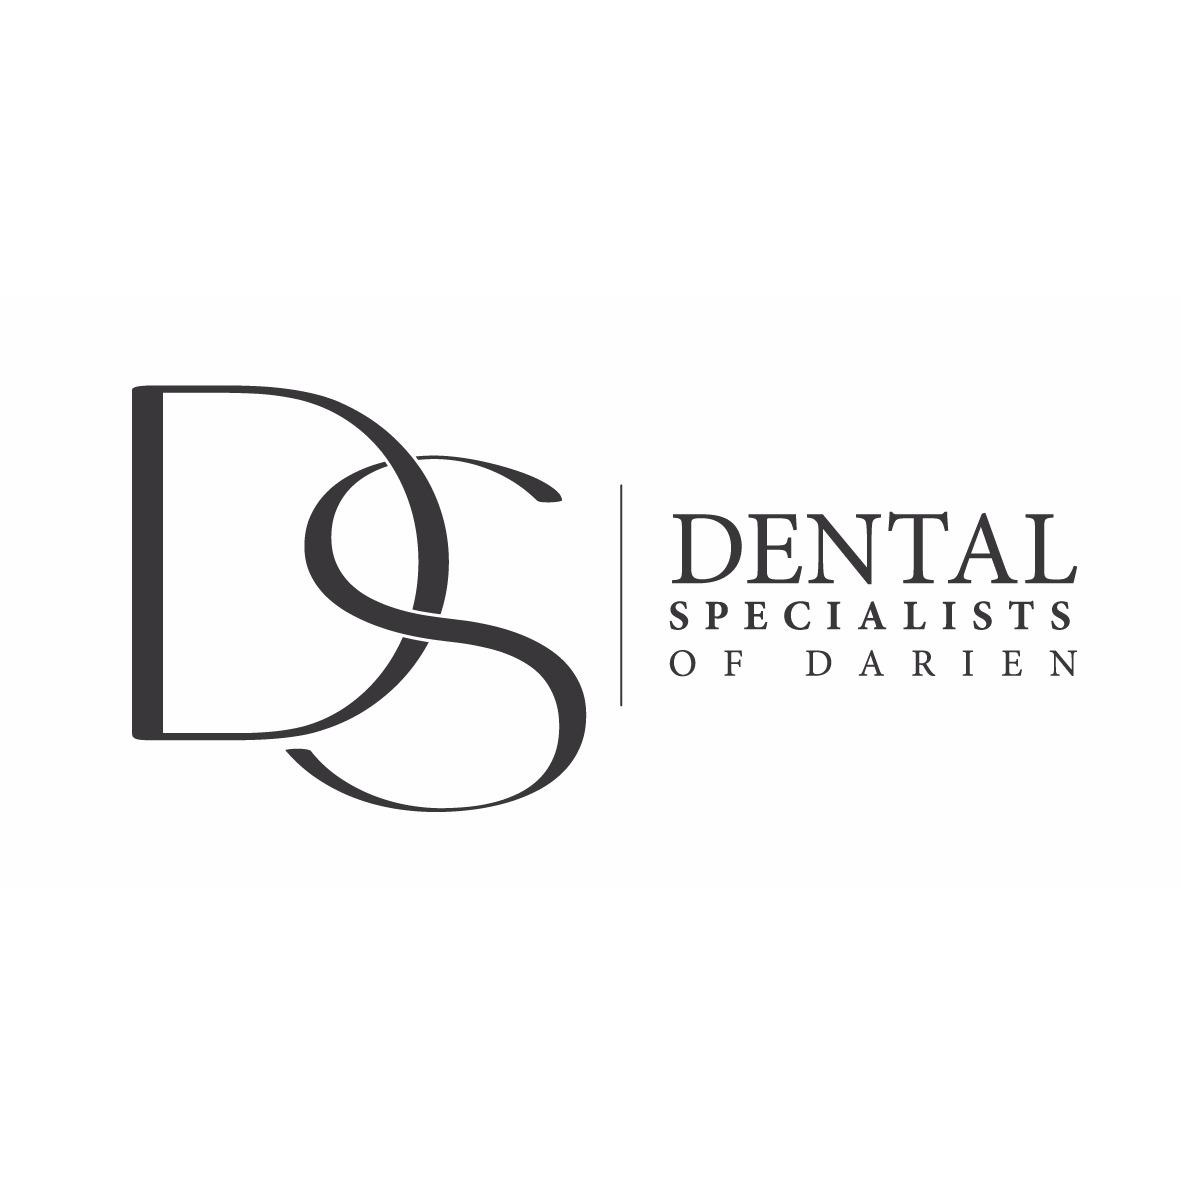 Dental Specialists of Darien